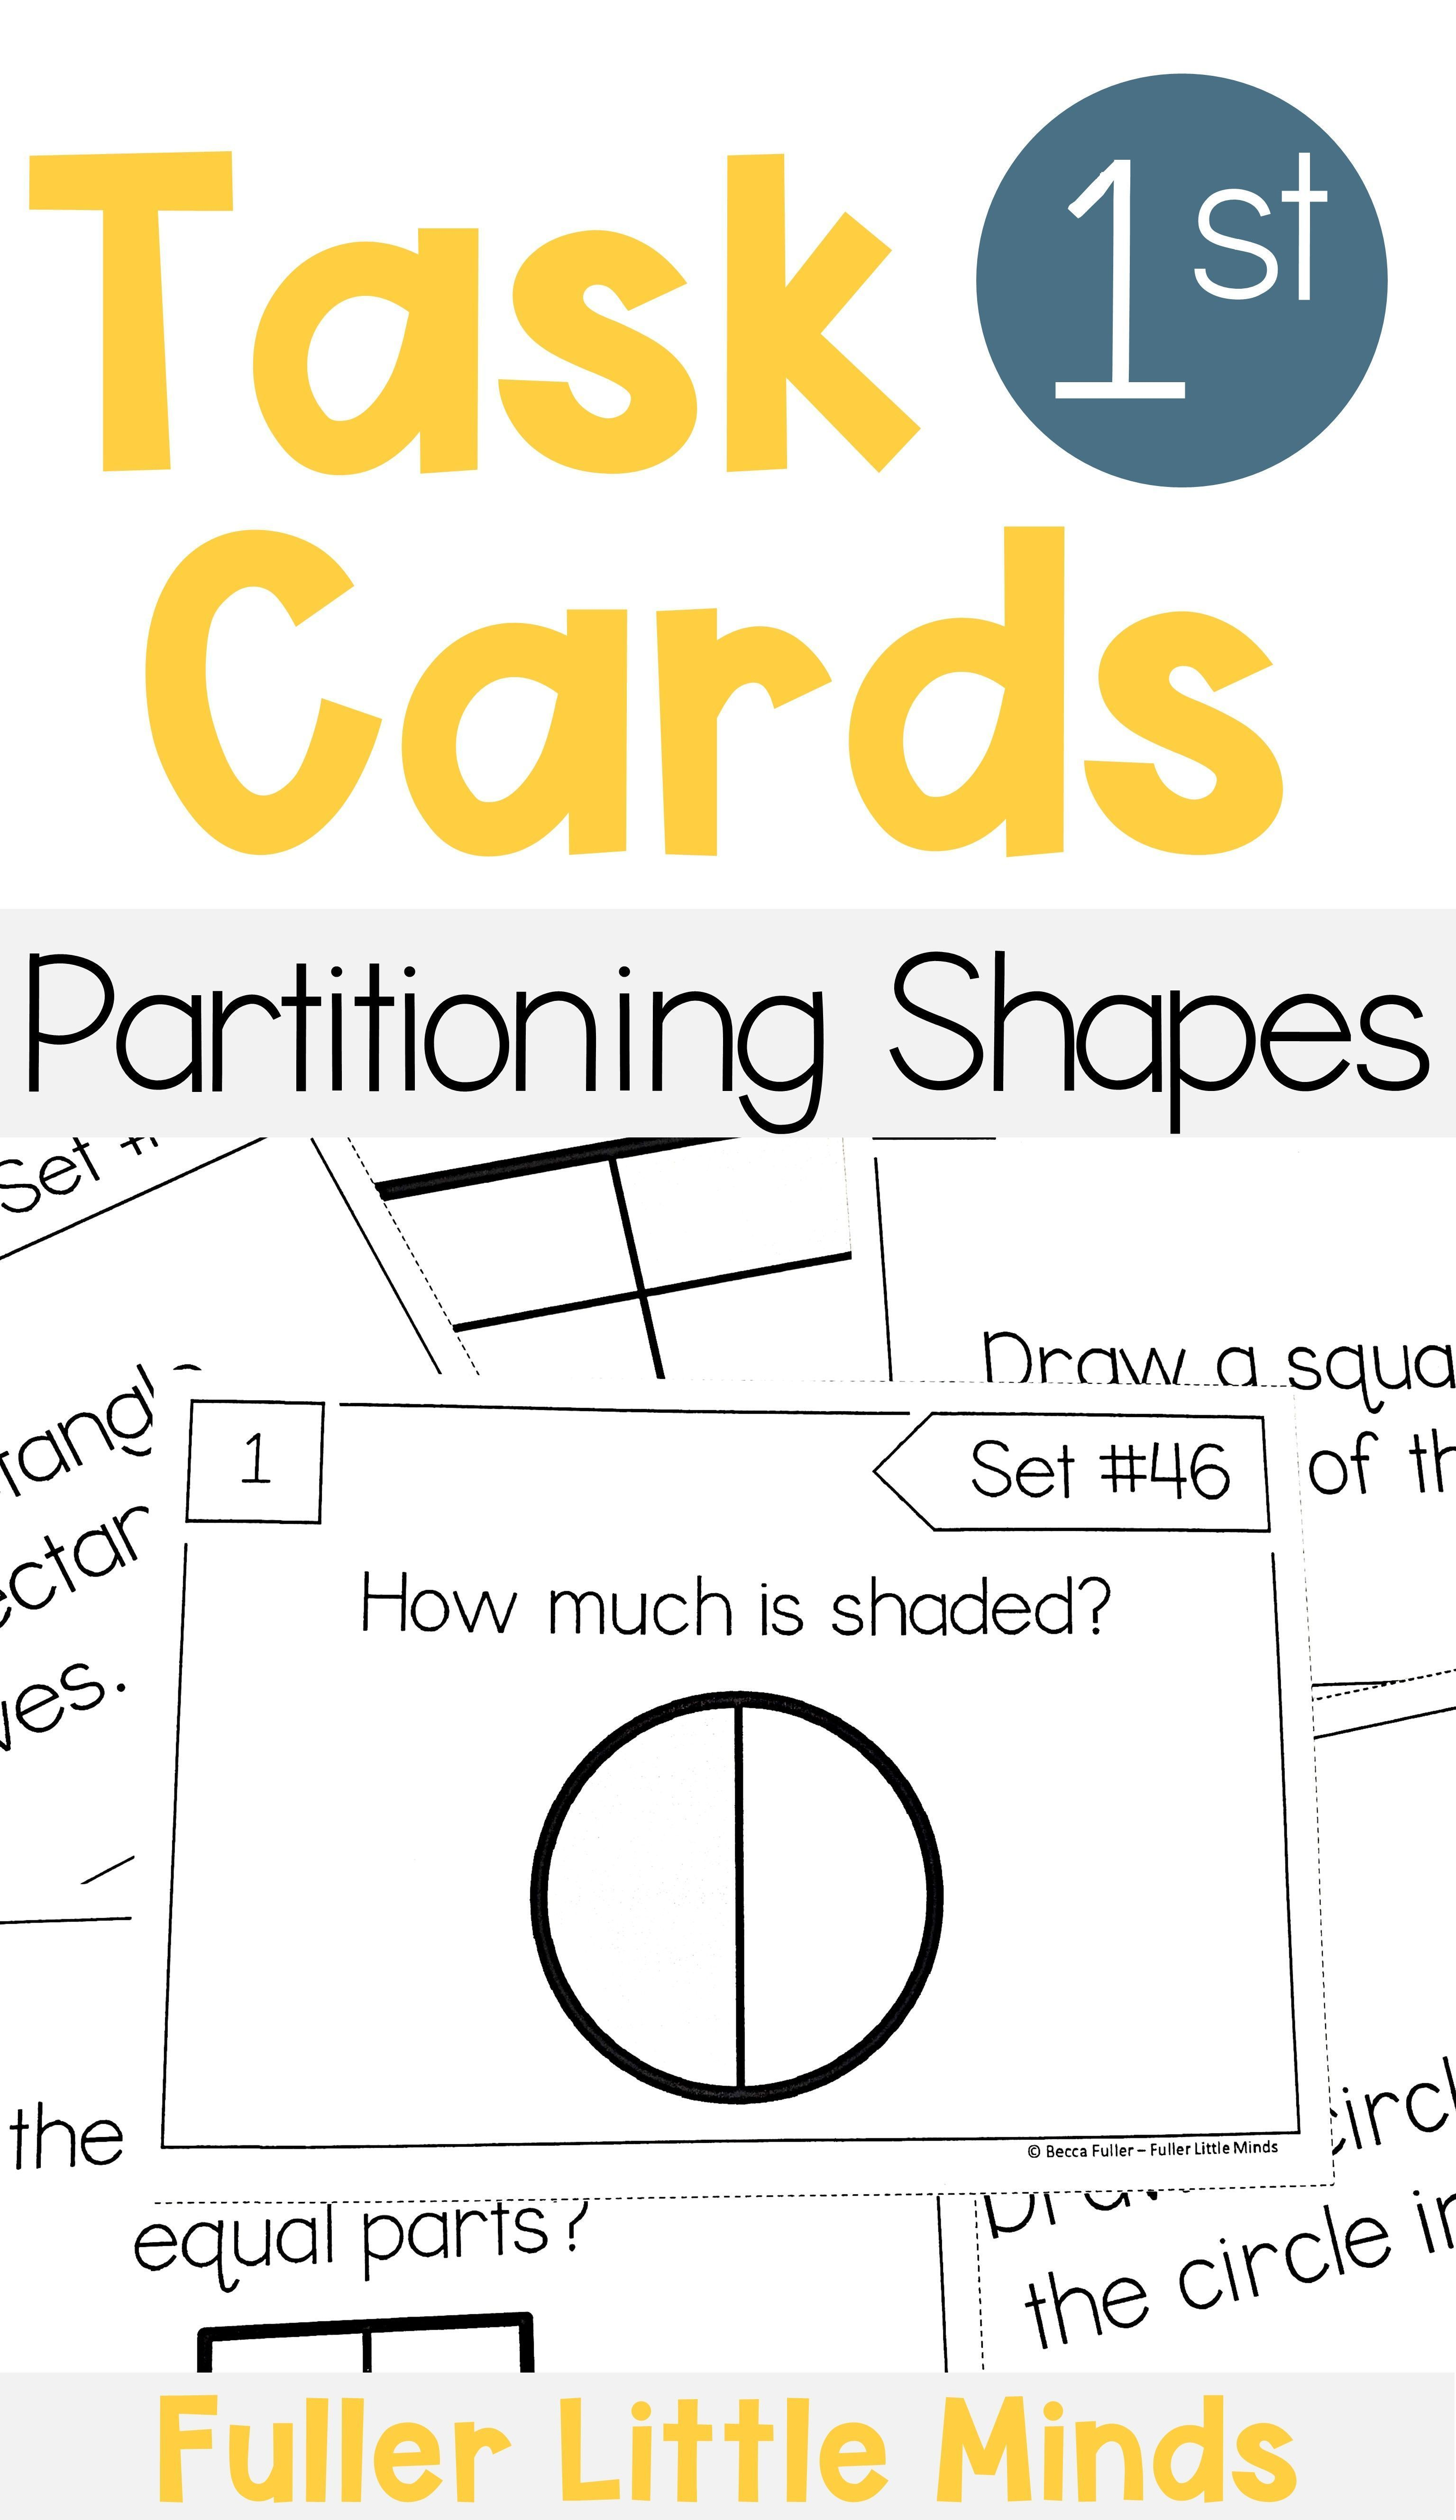 Partitioning Shapes 1st Grade Math Task Cards In 2020 Math Task Cards 1st Grade Math Math Tasks